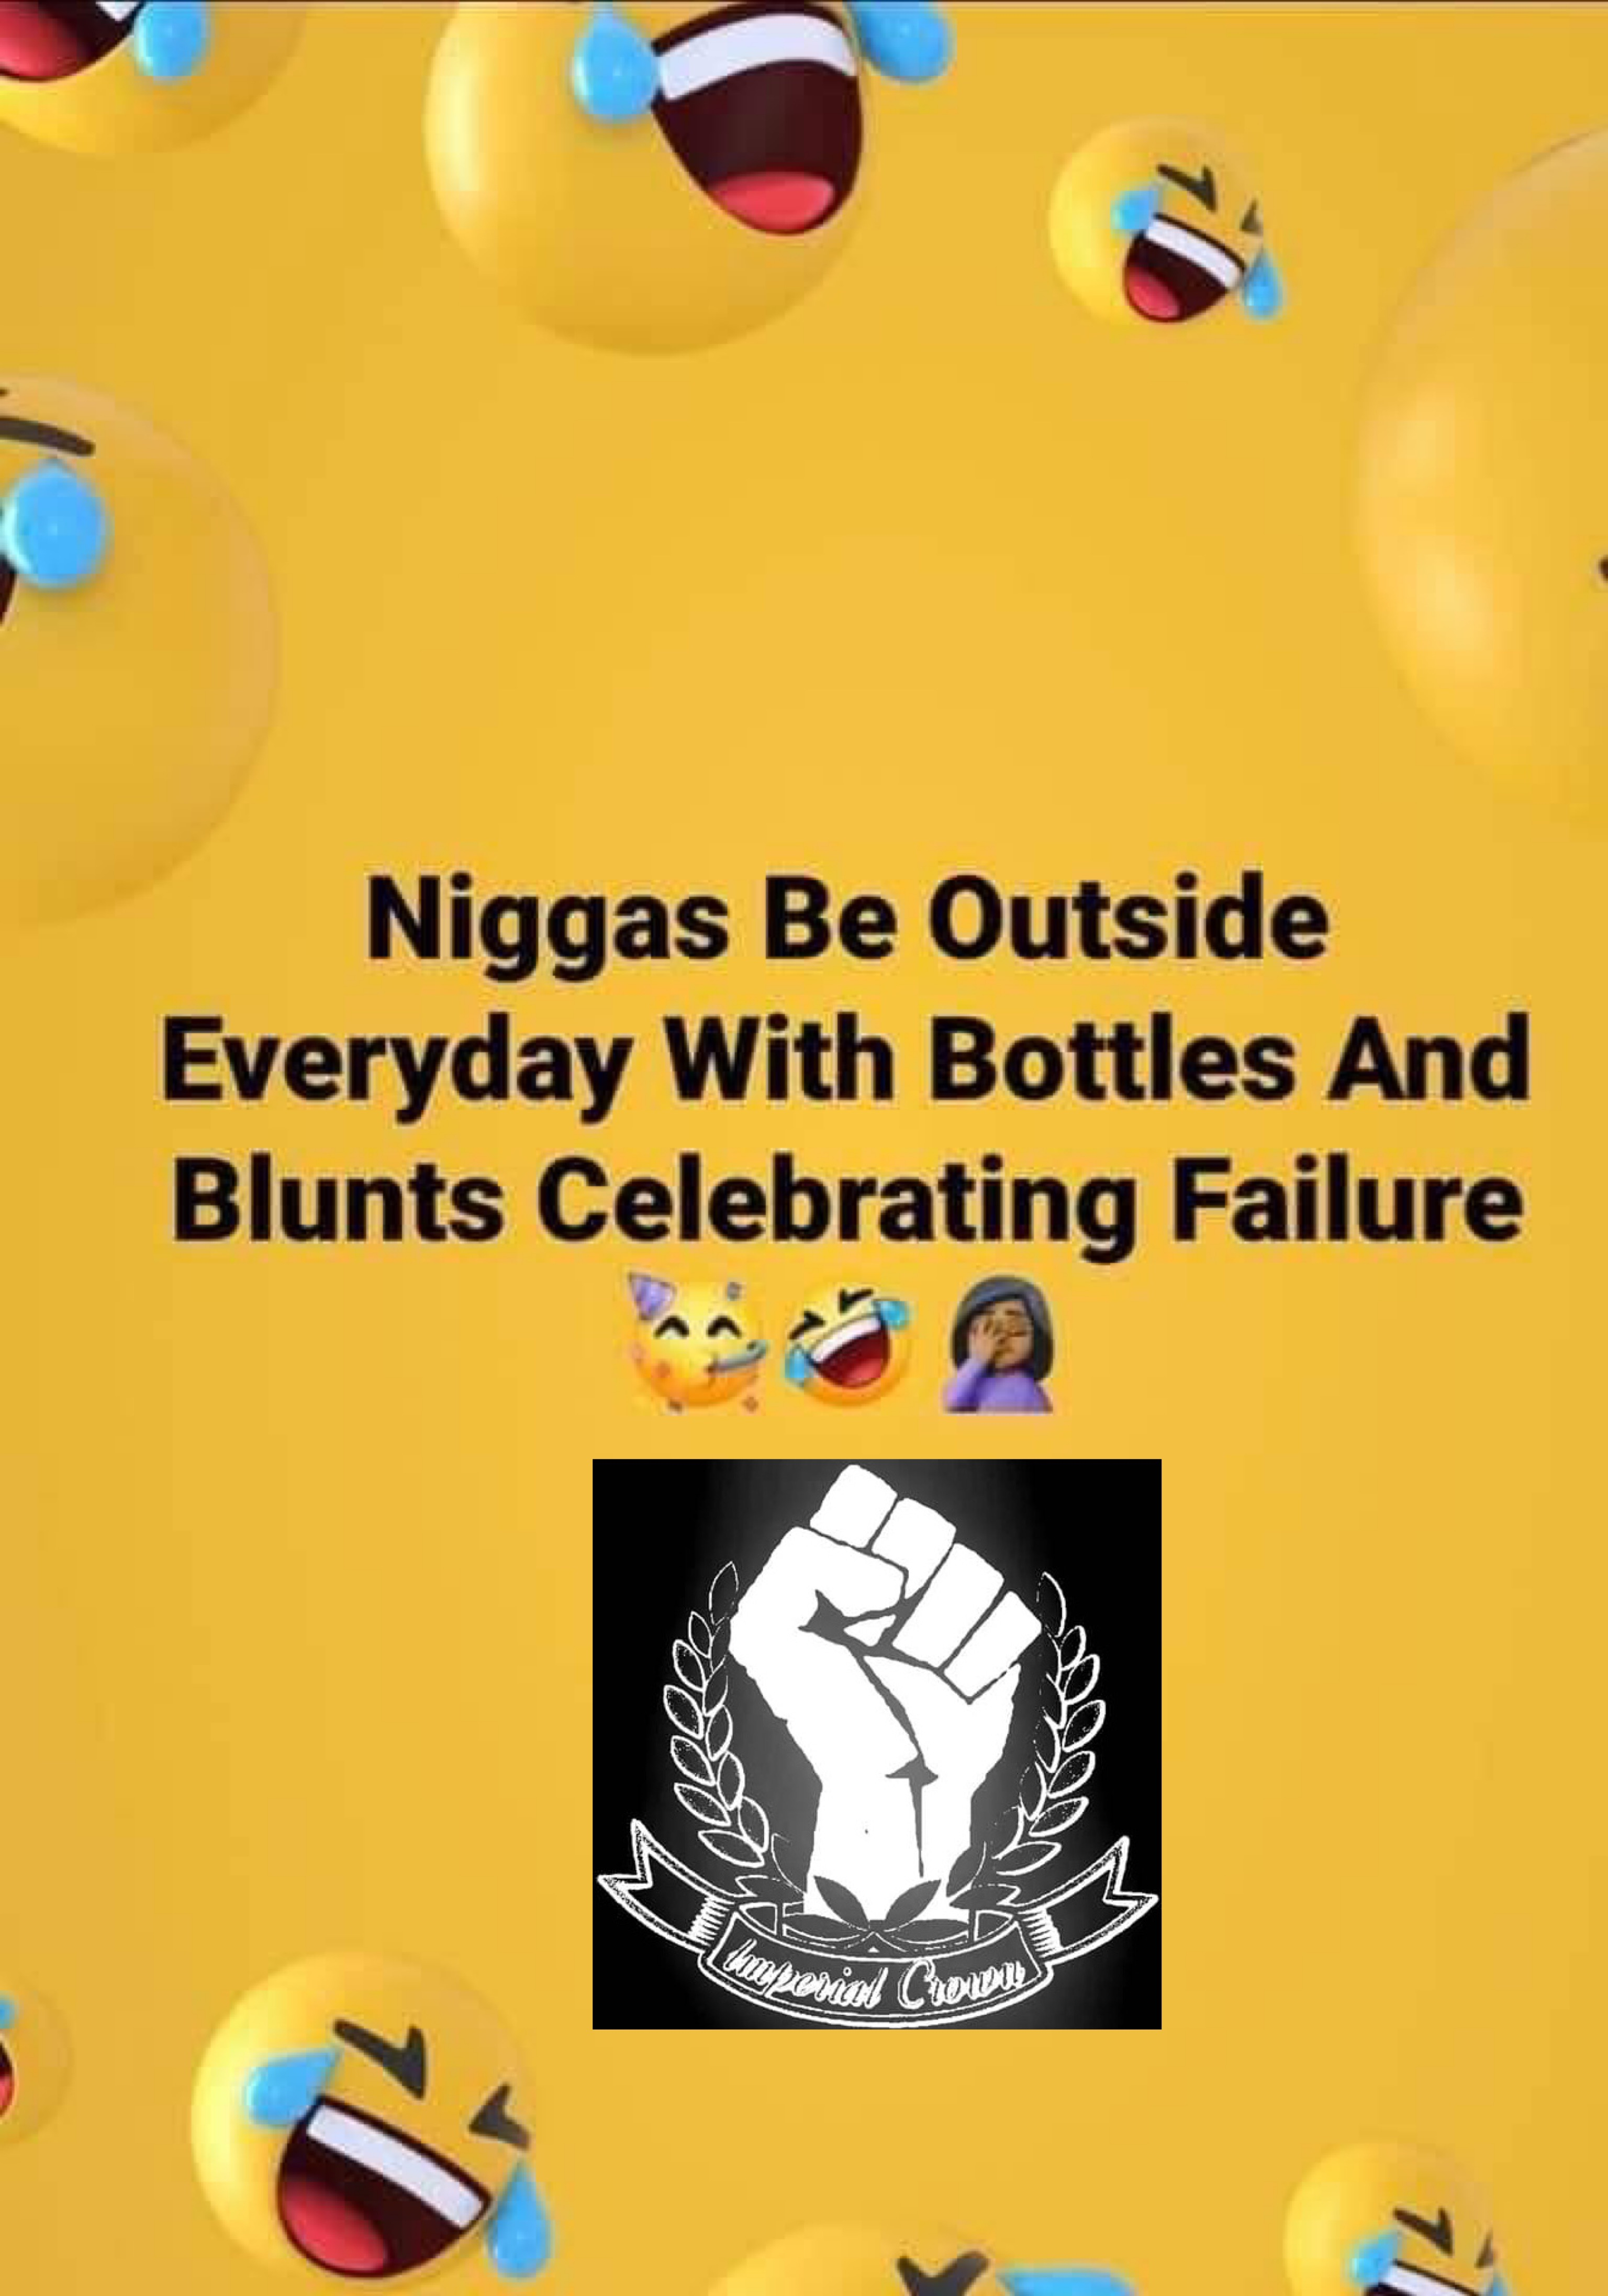 Niggas be outside everyday with bottles and blunts celebrating failure